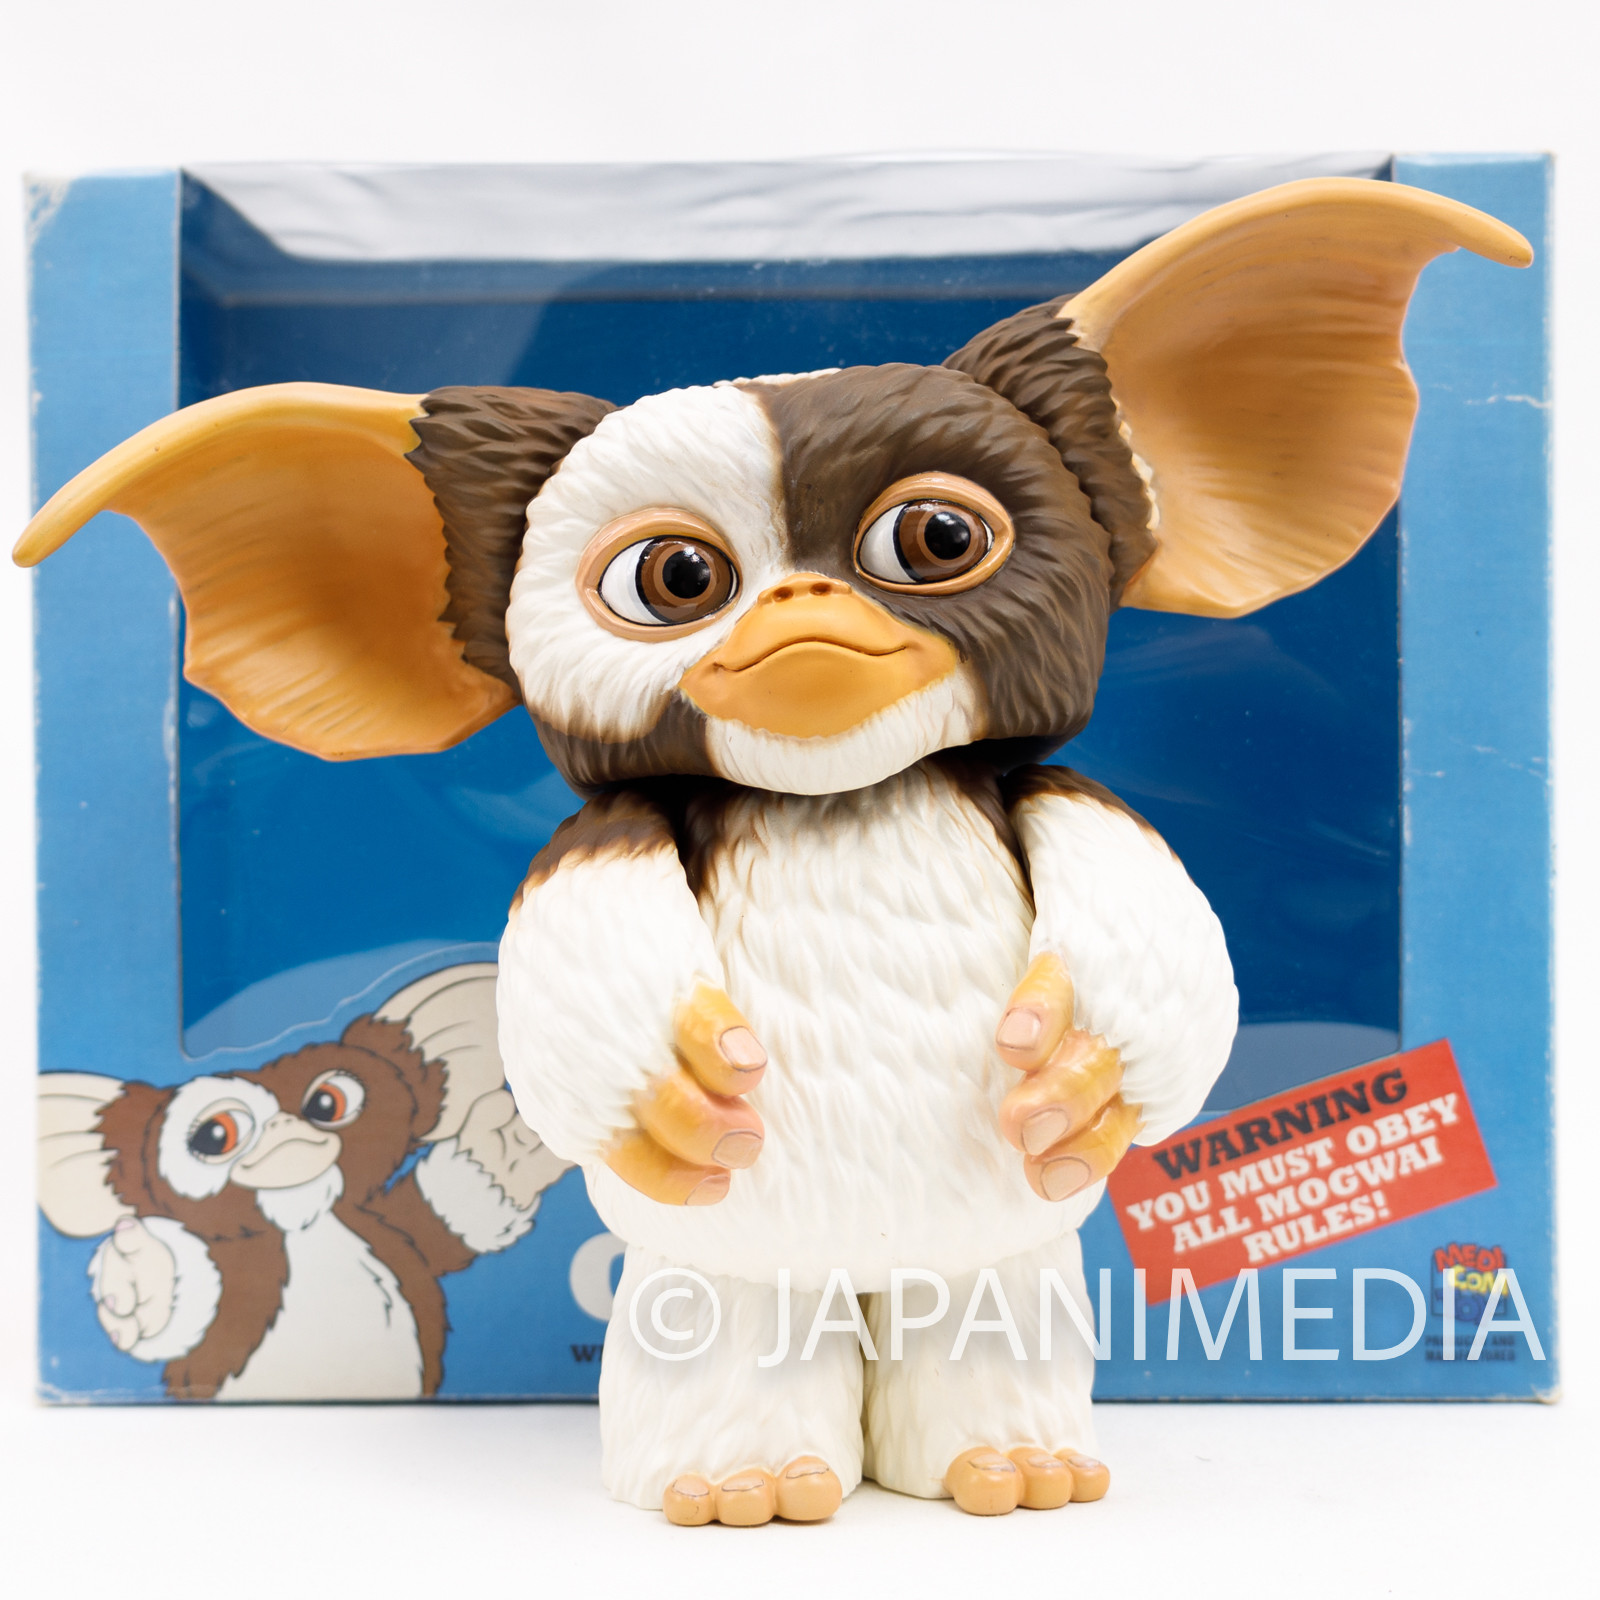 Gremlins GIZMO VCD Vinyl Collectible Dolls Figure Medicom Toy JAPAN MOVIE